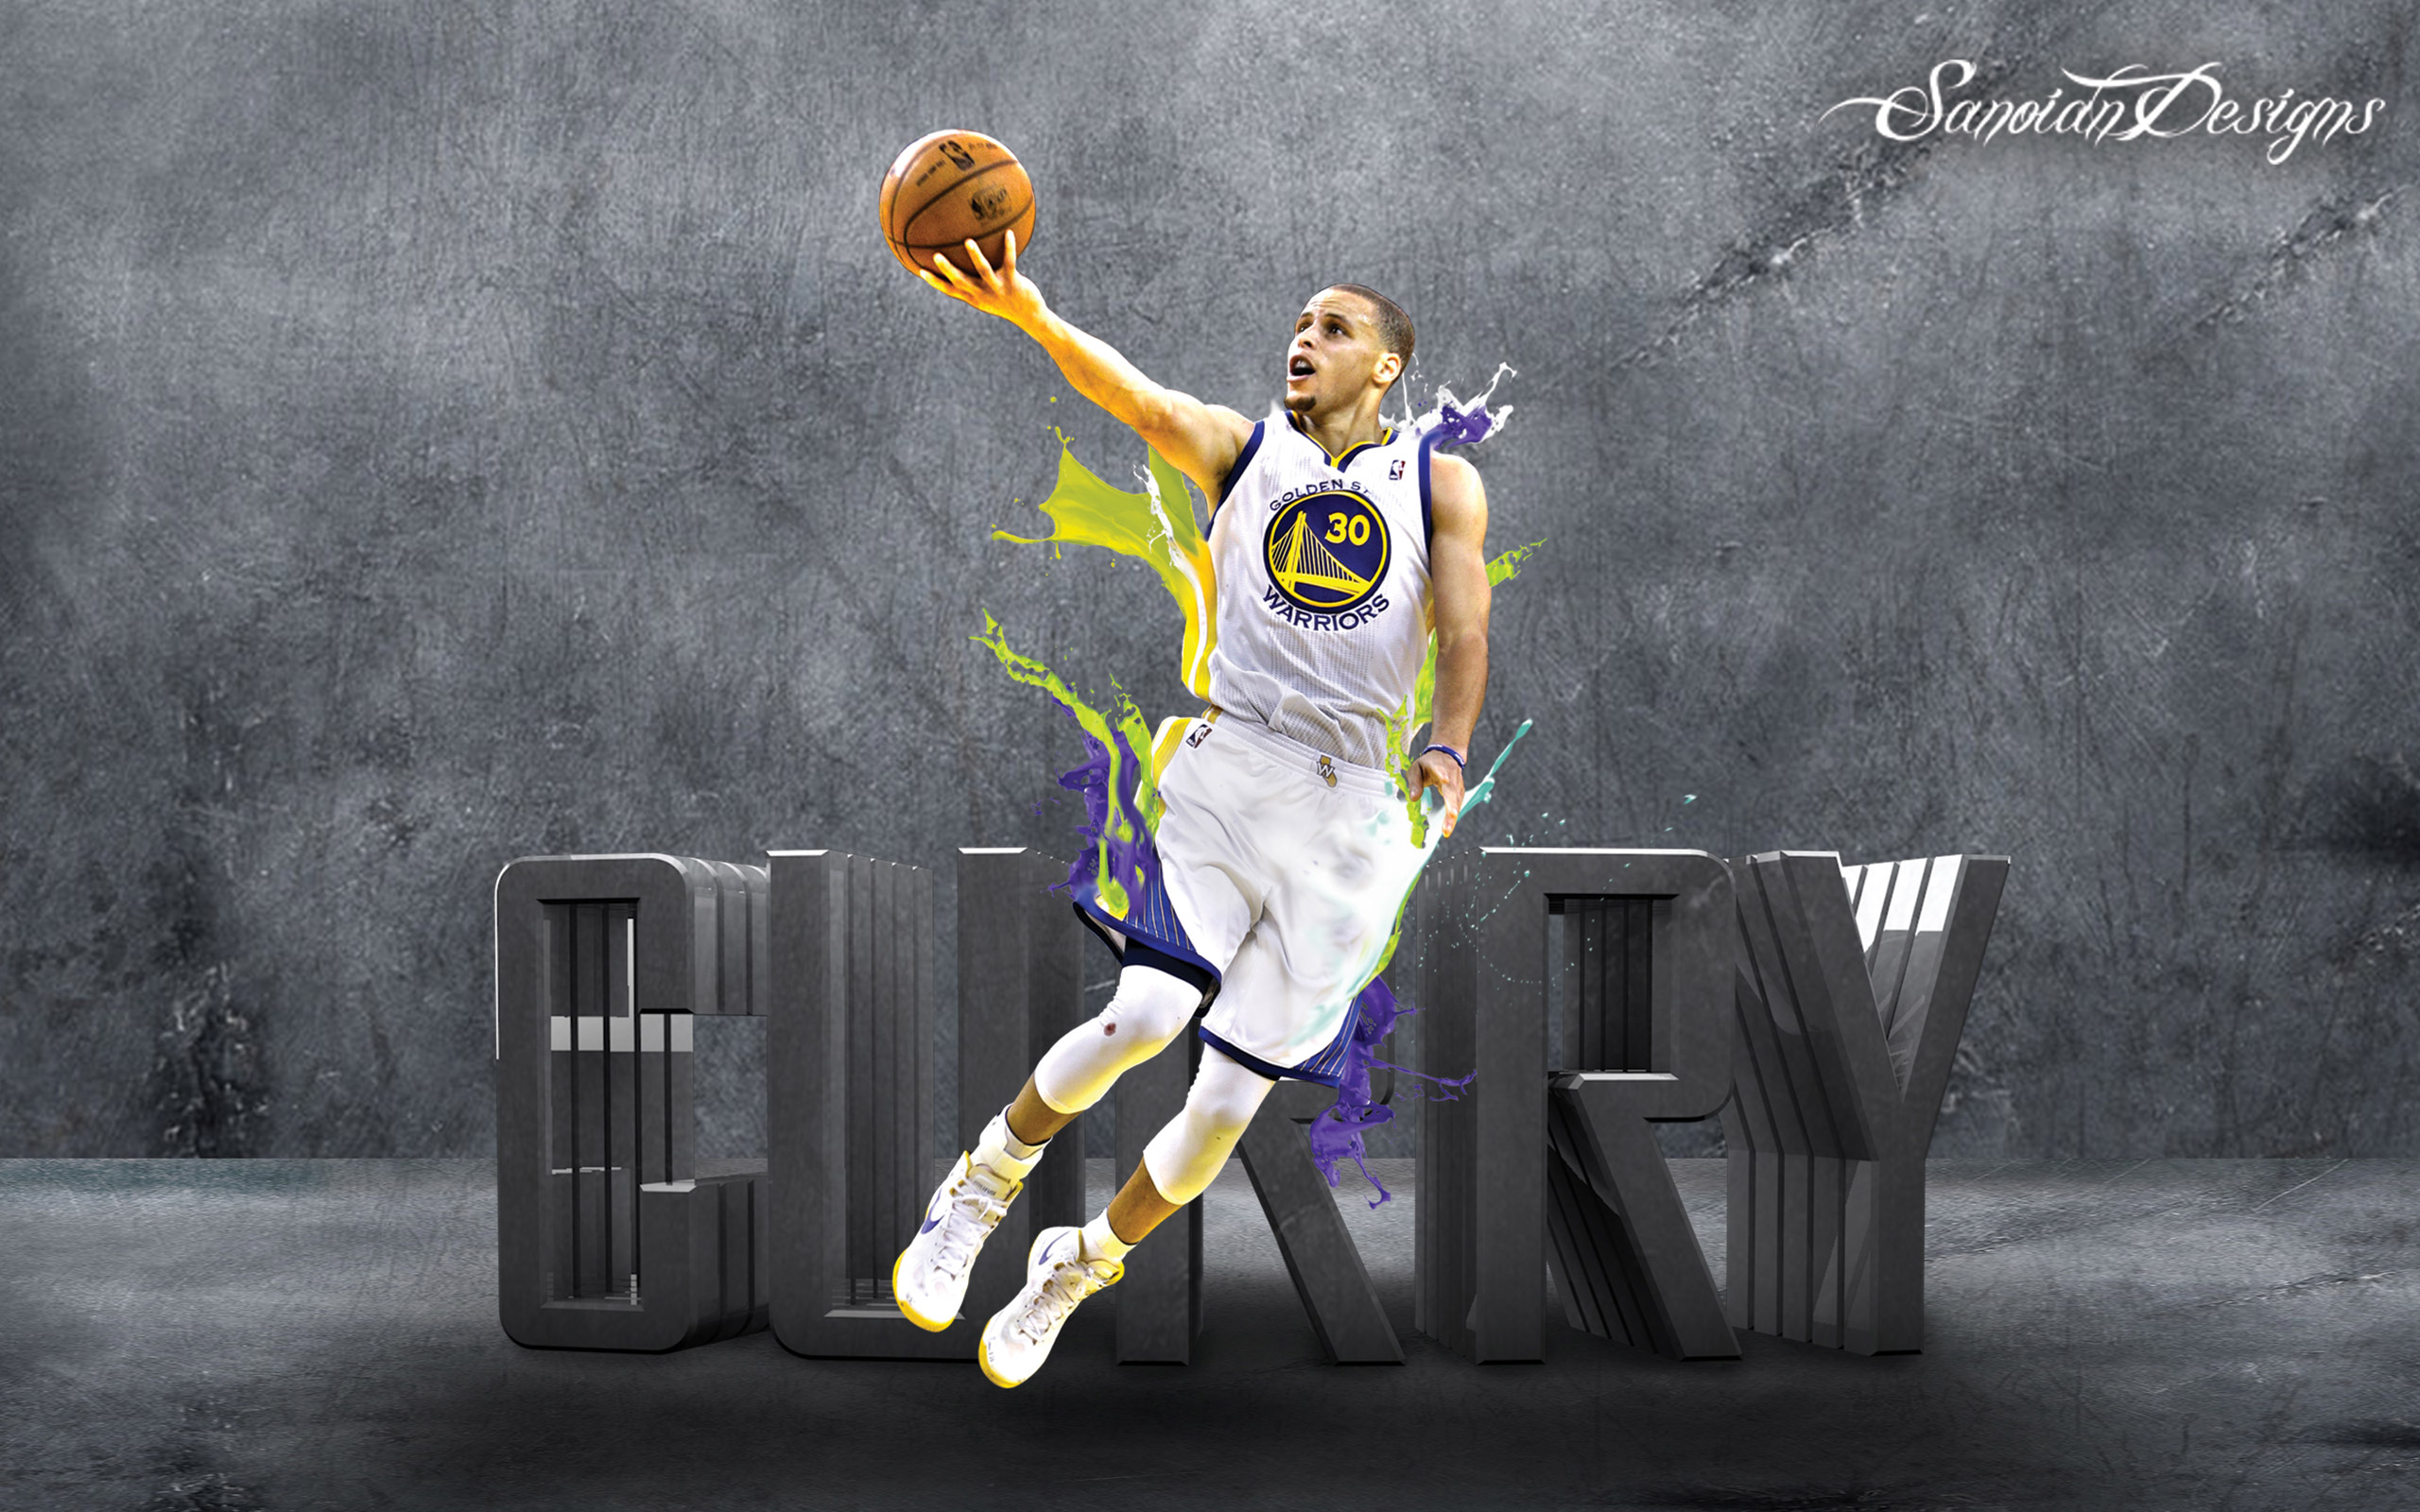 Stephen Curry Layup 25601600 Wallpaper Basketball Wallpapers at 2560x1600